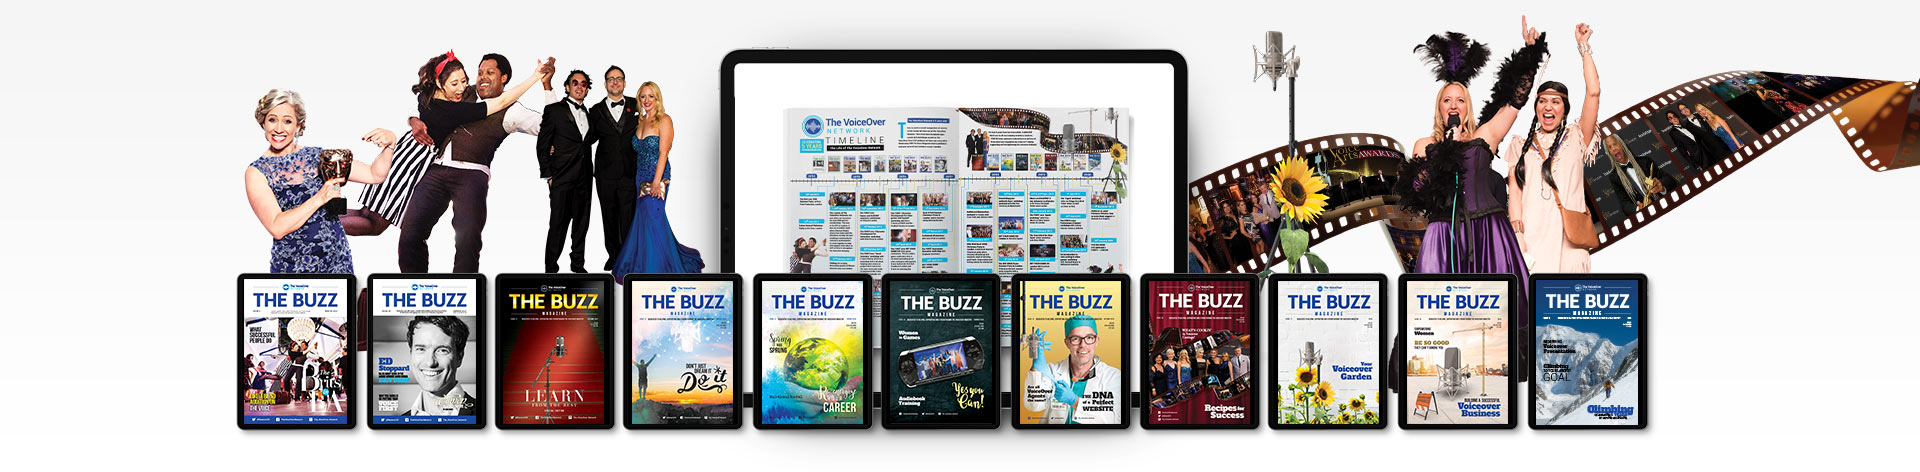 The Buzz Interactive Magazine Header